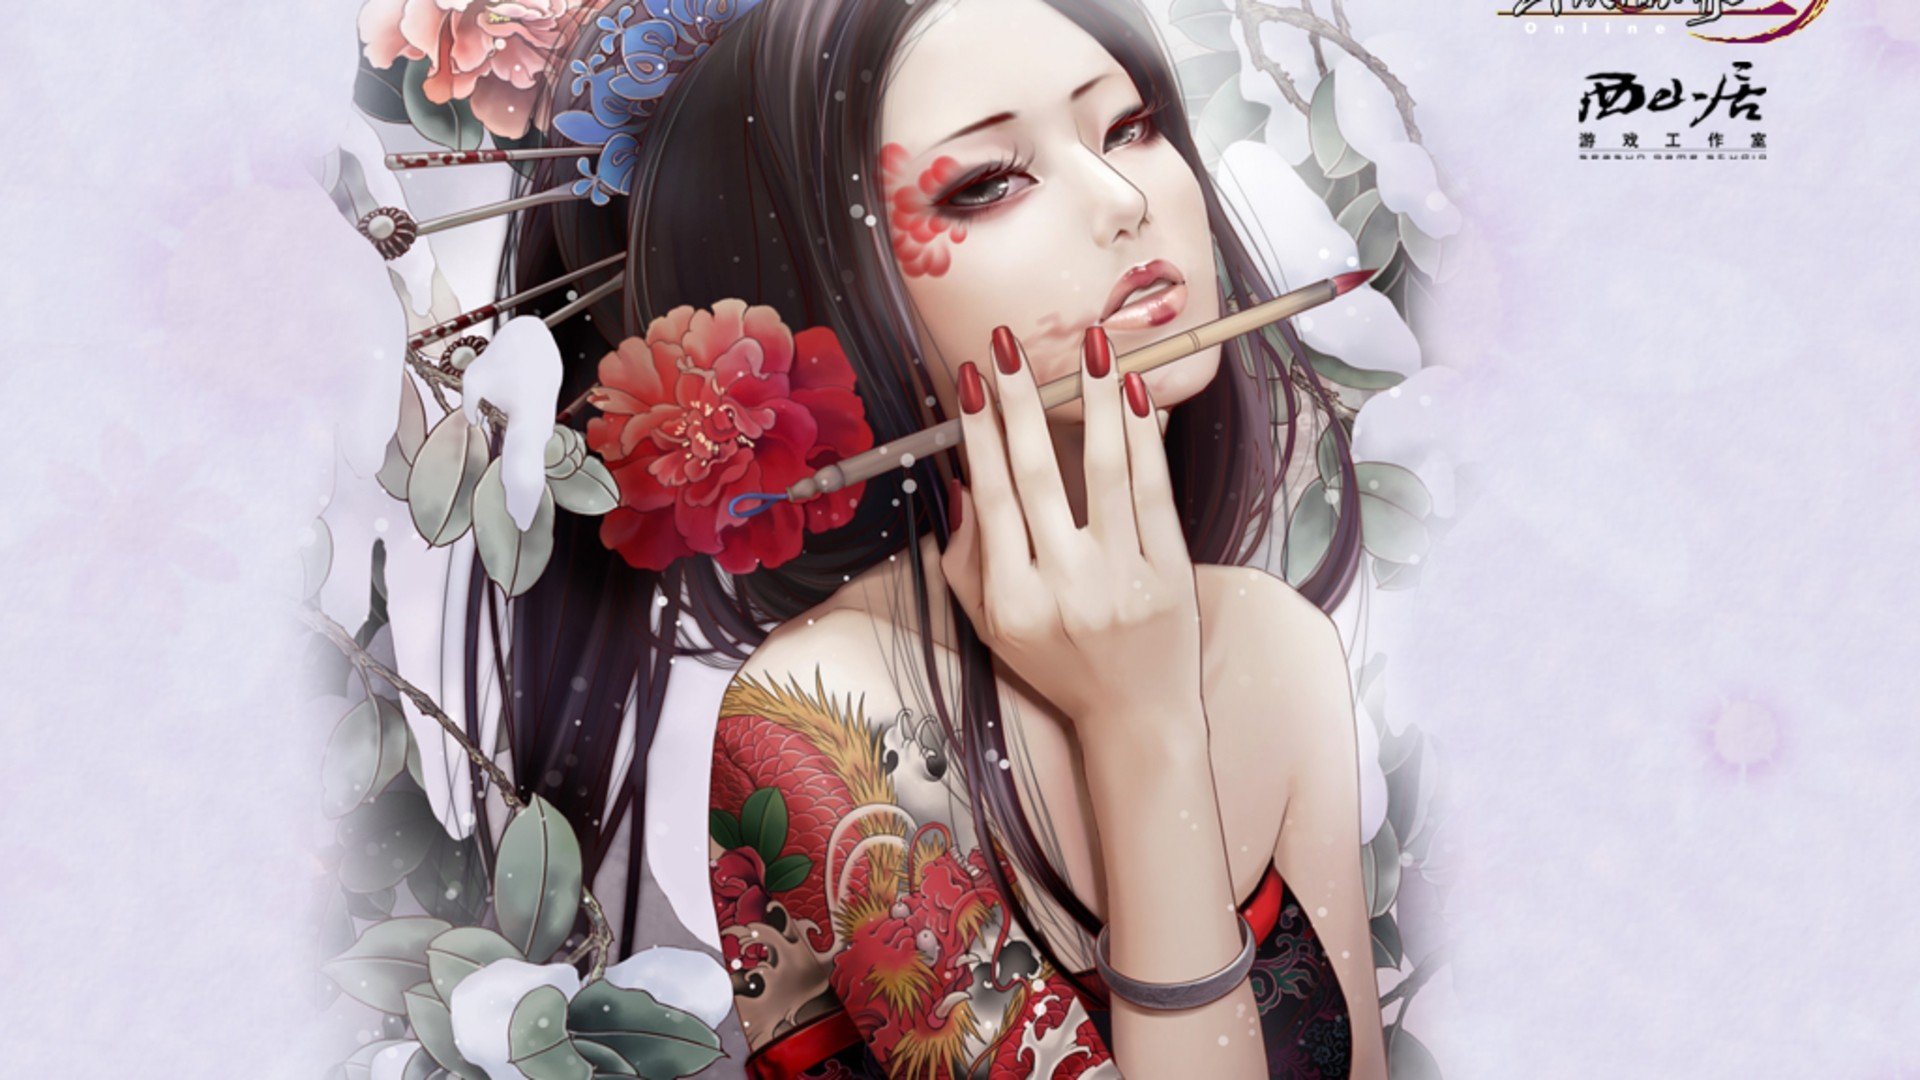 Res - 1920x1080, - Beautiful Chinese Woman Drawing , HD Wallpaper & Backgrounds